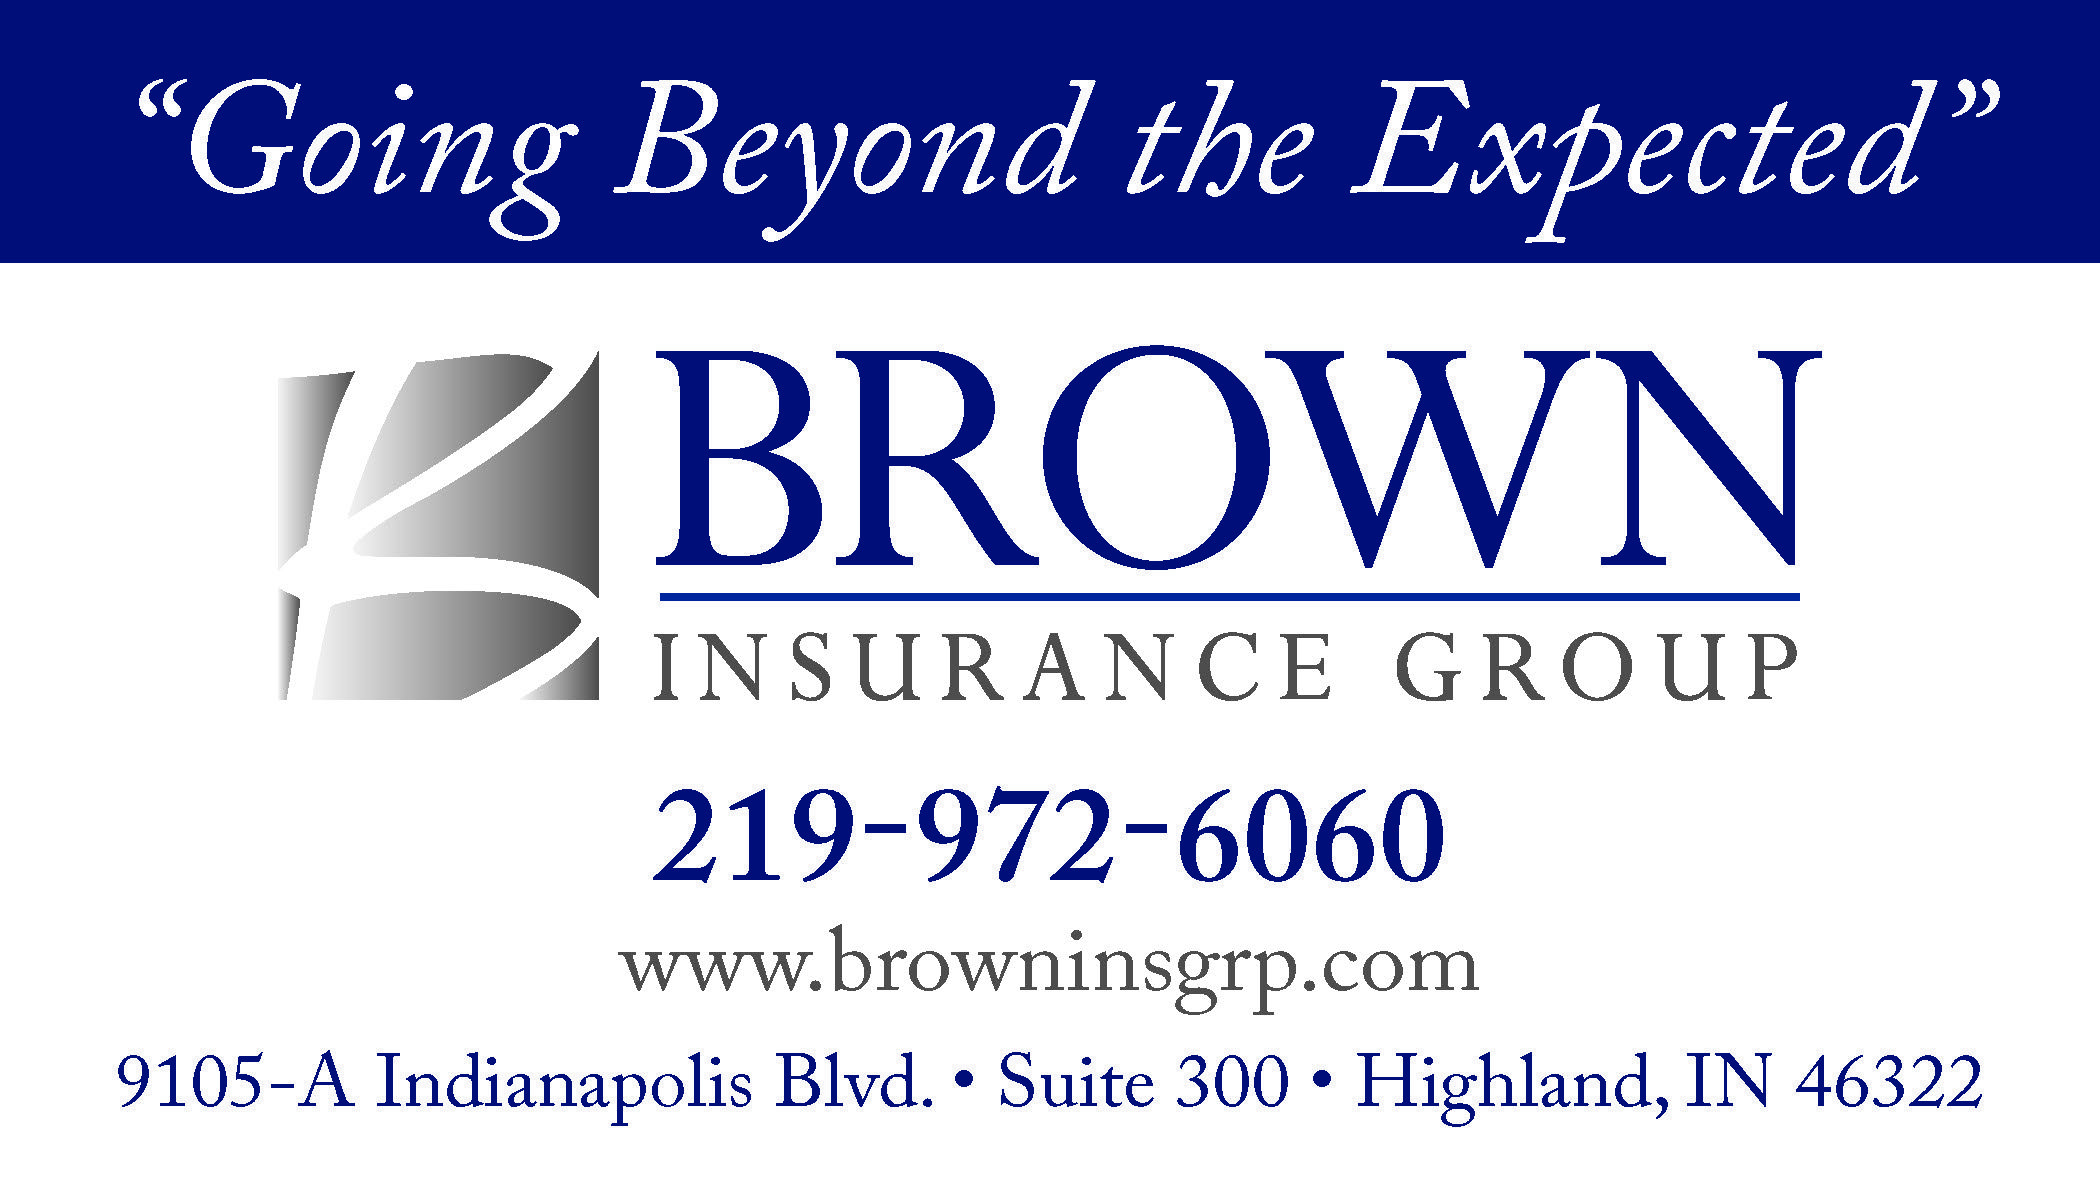 Founded in 1946 koester brown insurance inc prospered